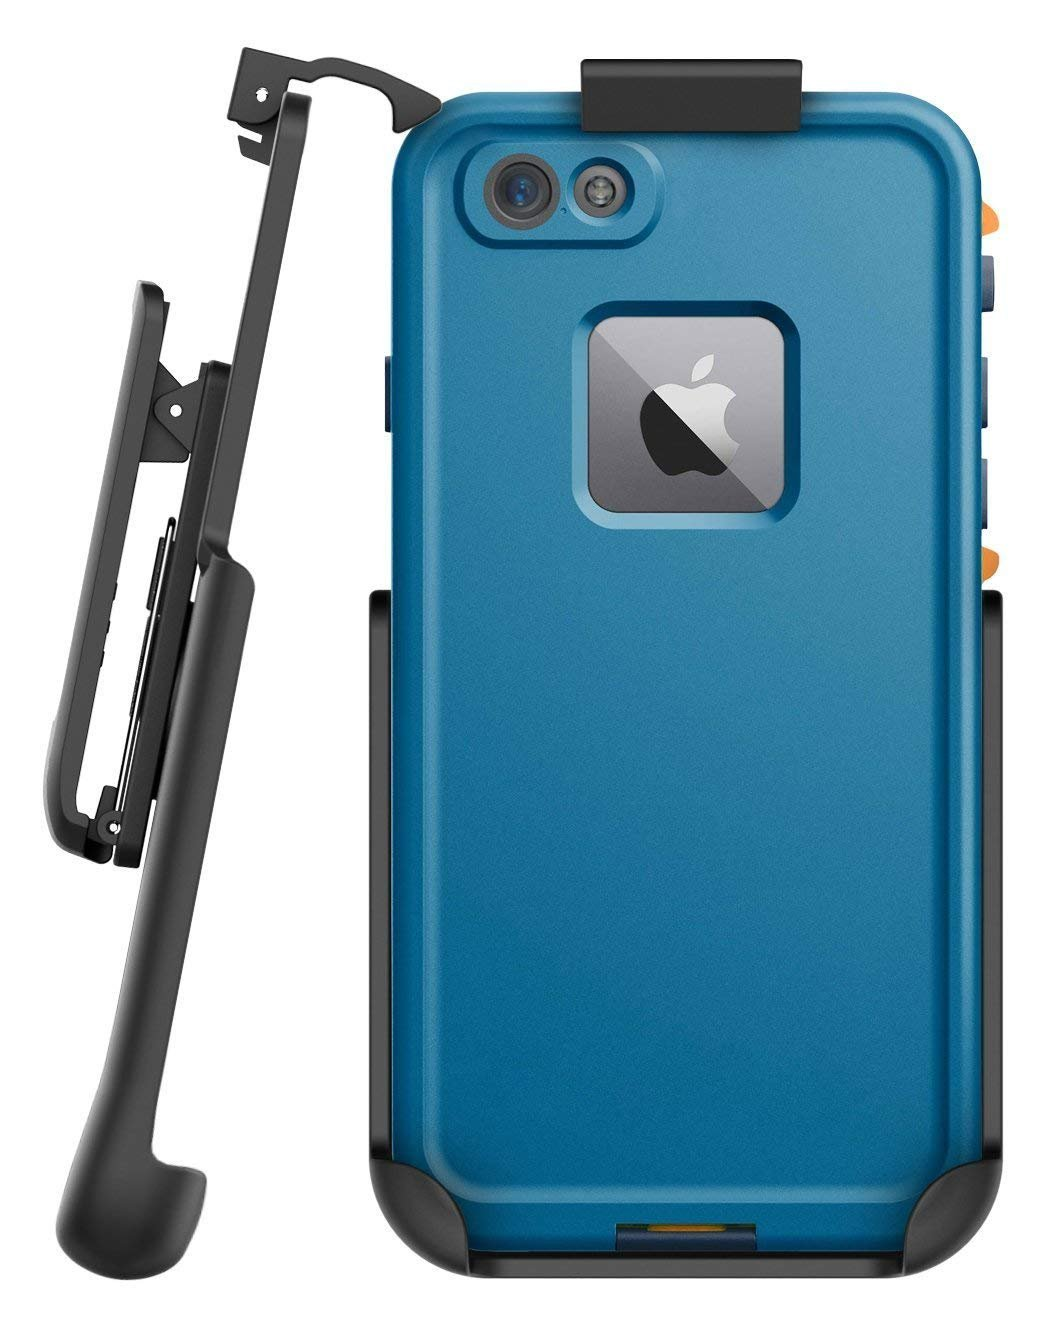 low priced bb432 da7e7 iPhone 6s Plus Lifeproof Fre Holster